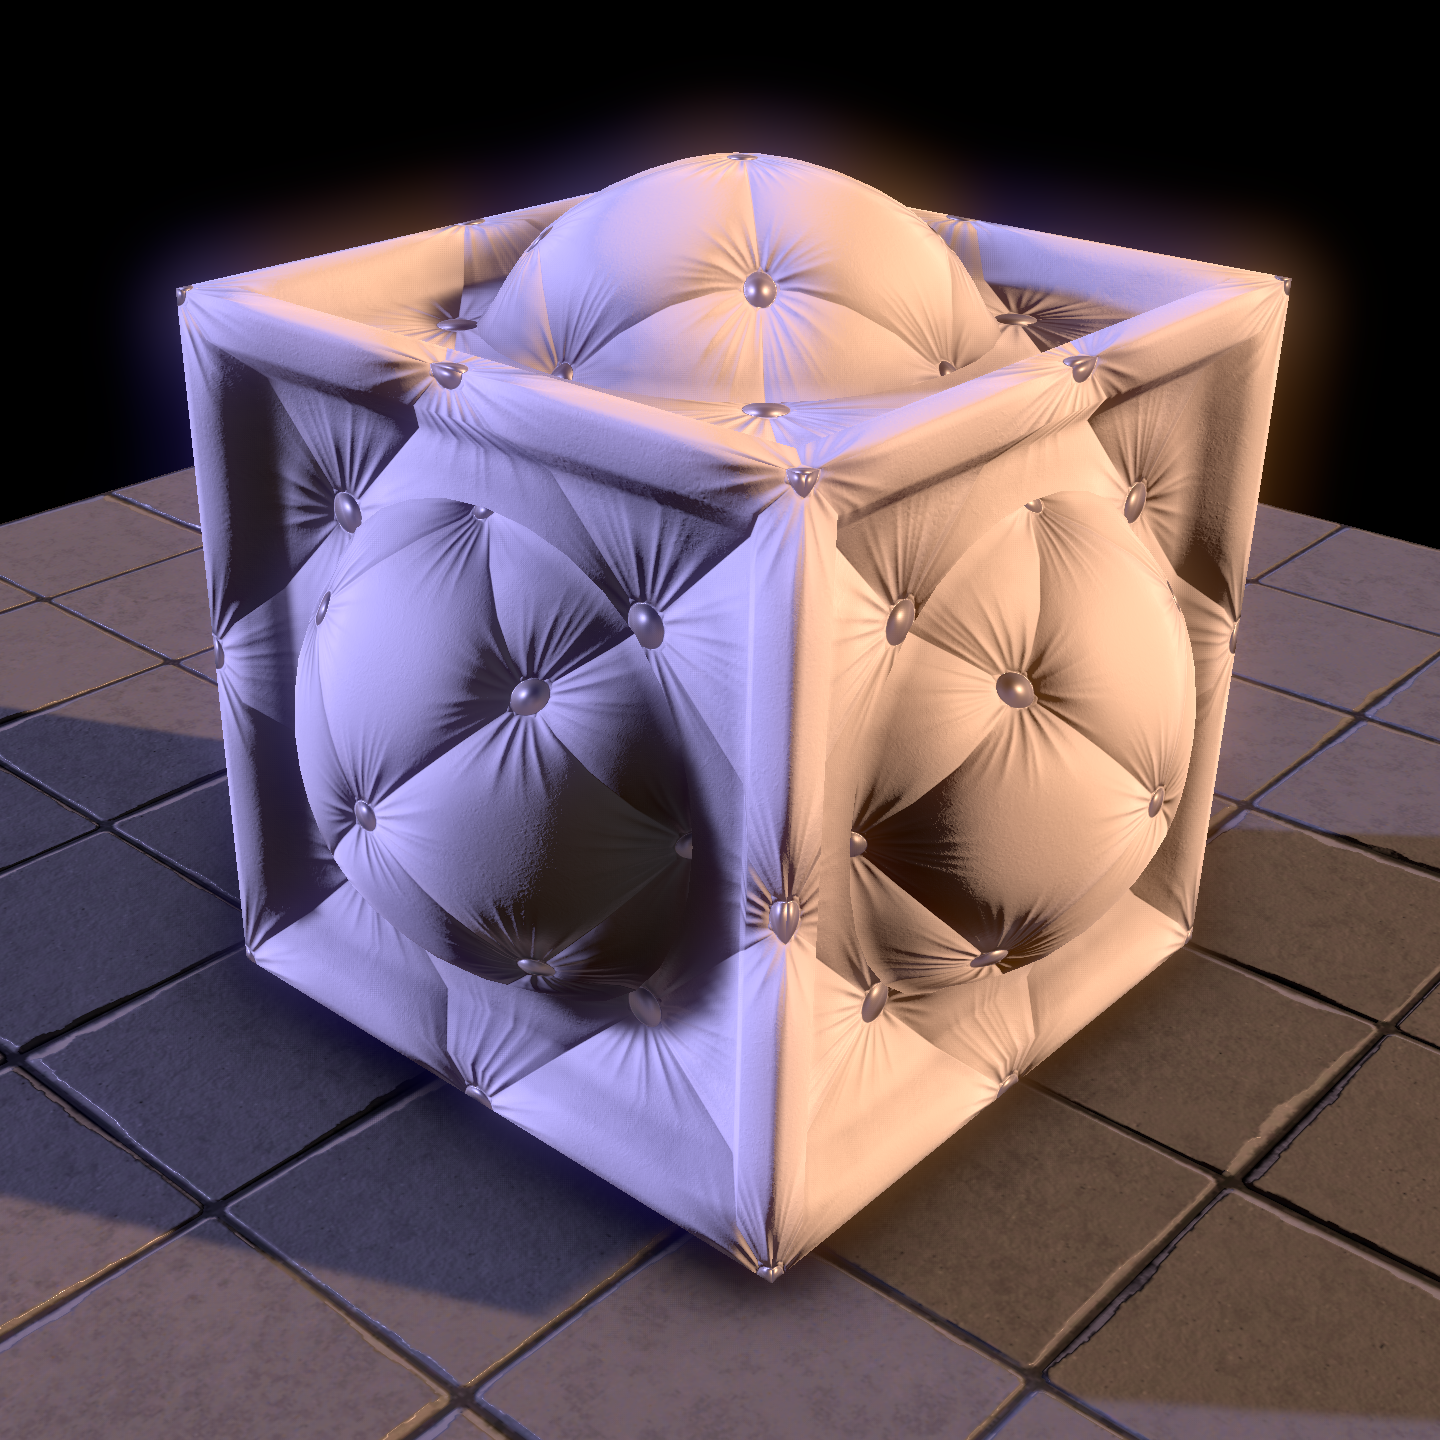 White Albedo //50% Smoothness // Normal Map // Metalness Map   //   CLICK FOR FULL SIZE